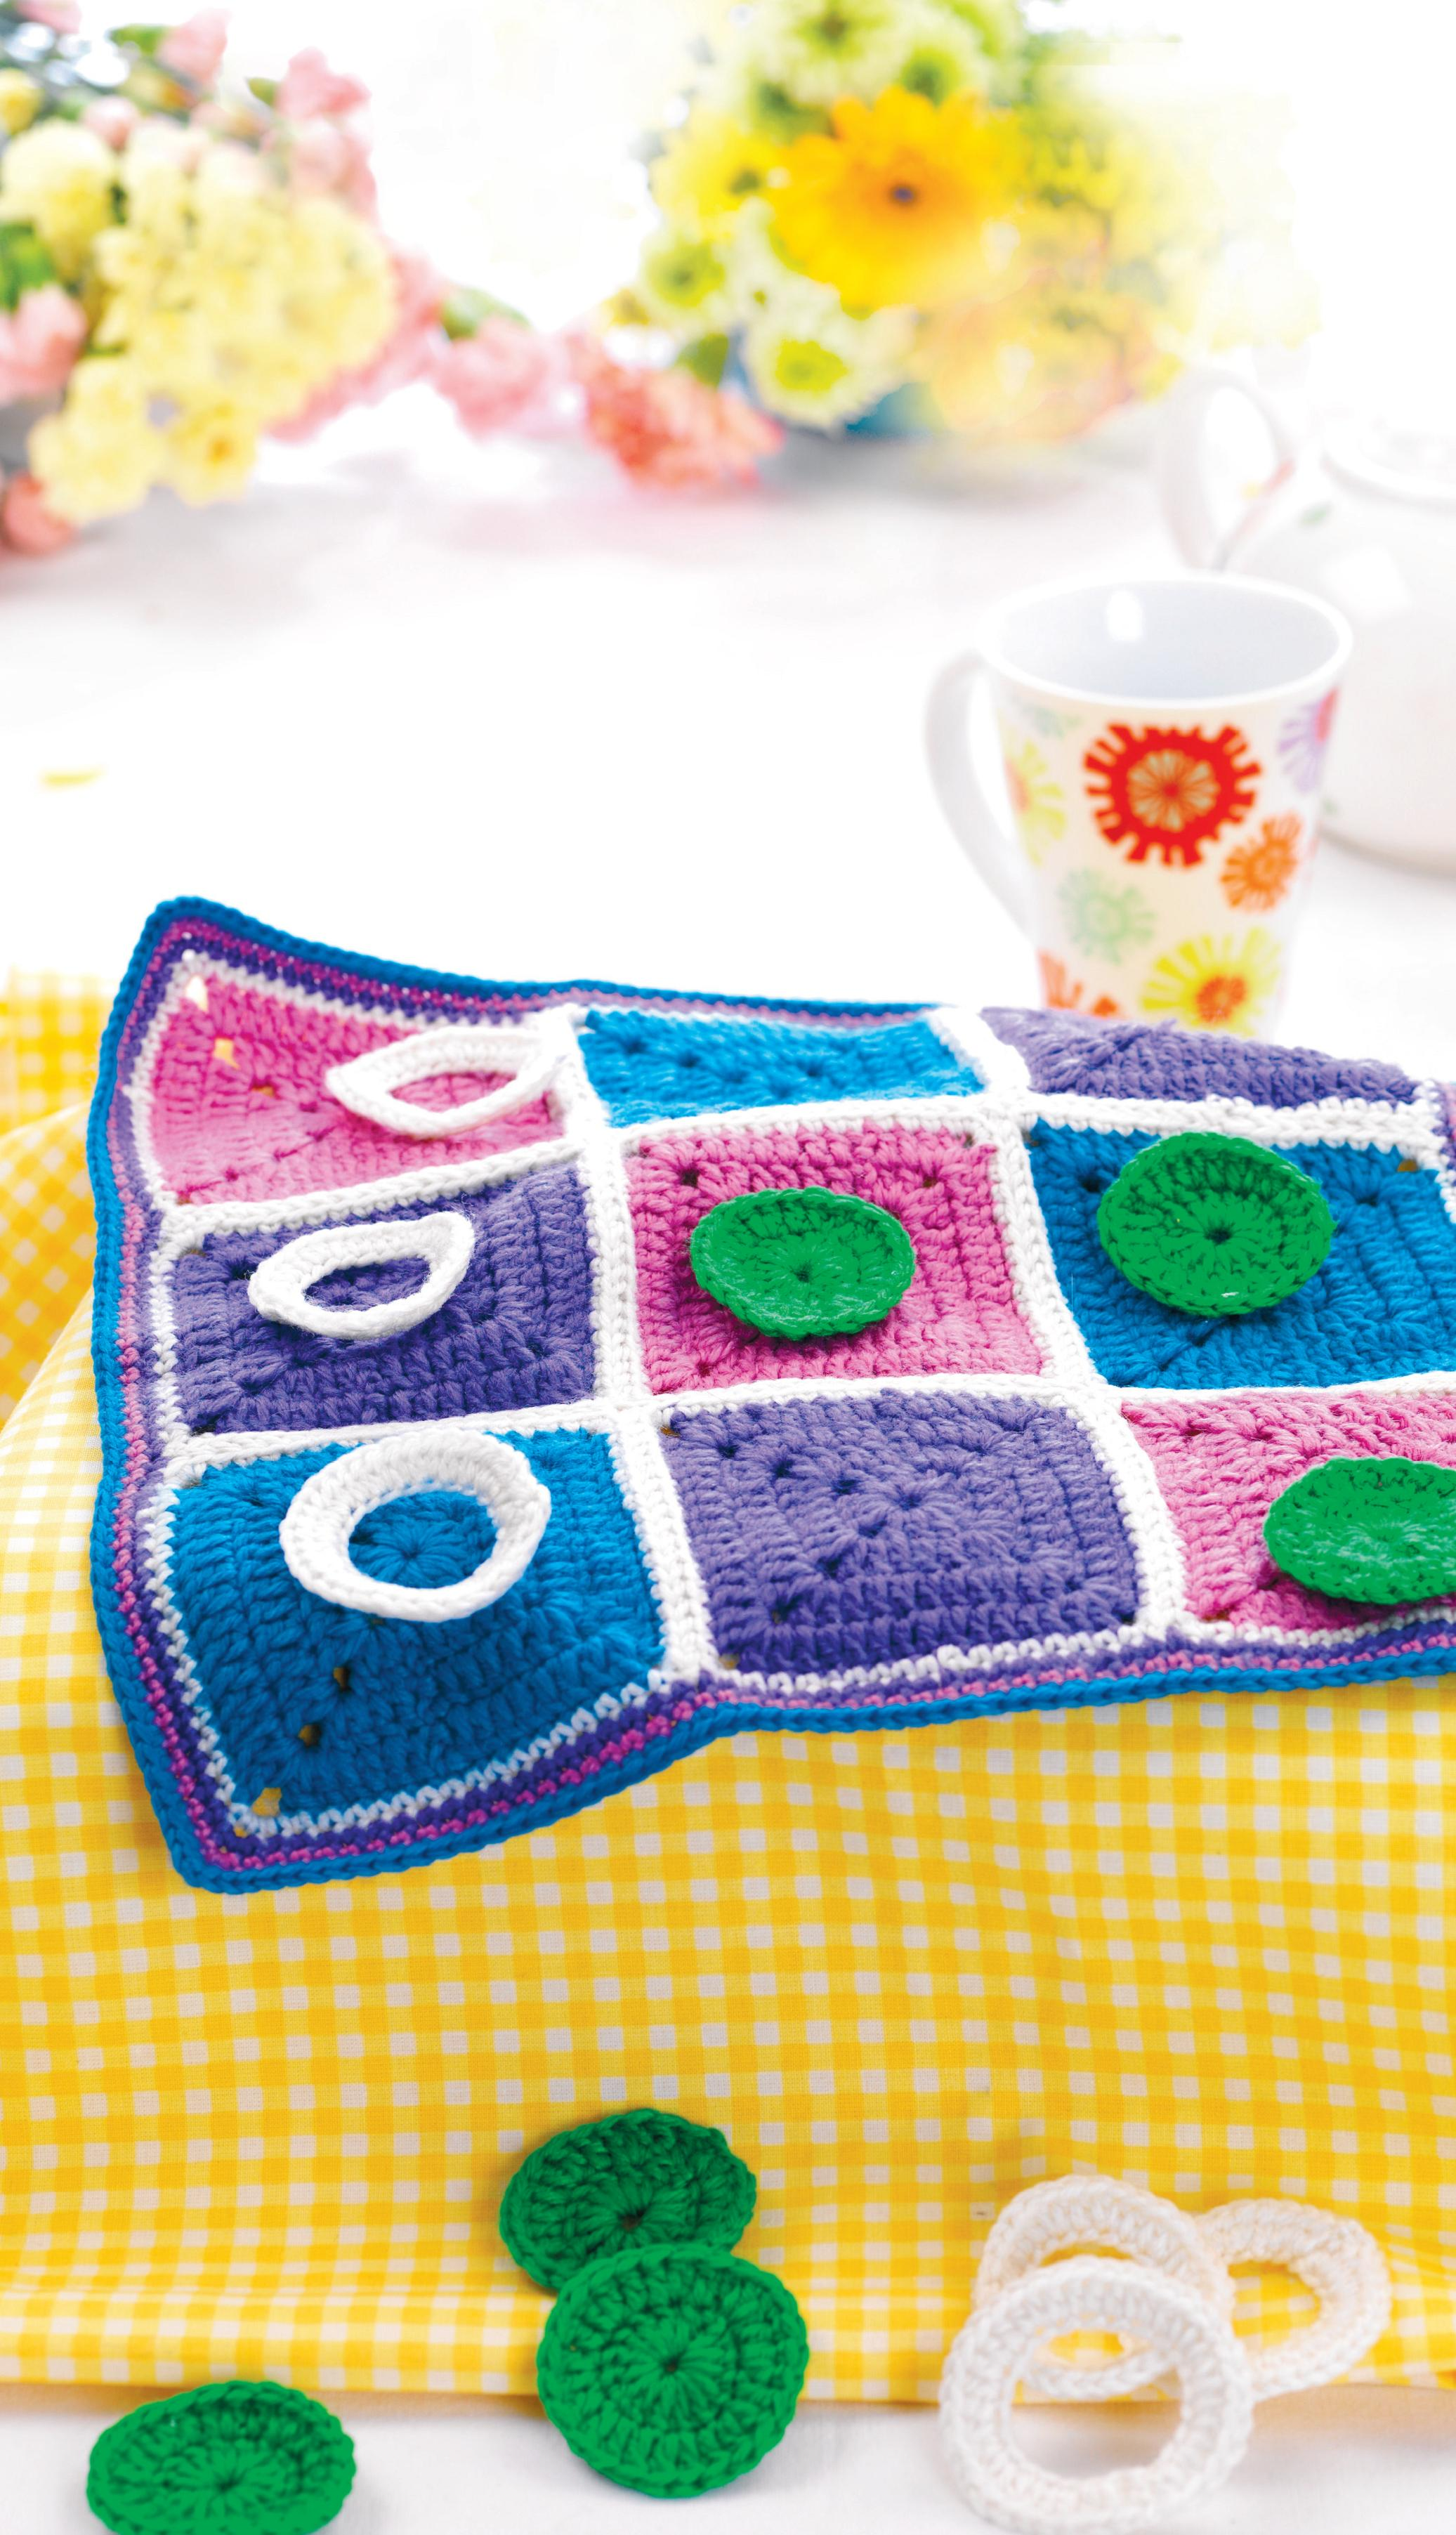 Crochet tic-tac-toe game Crochet Pattern